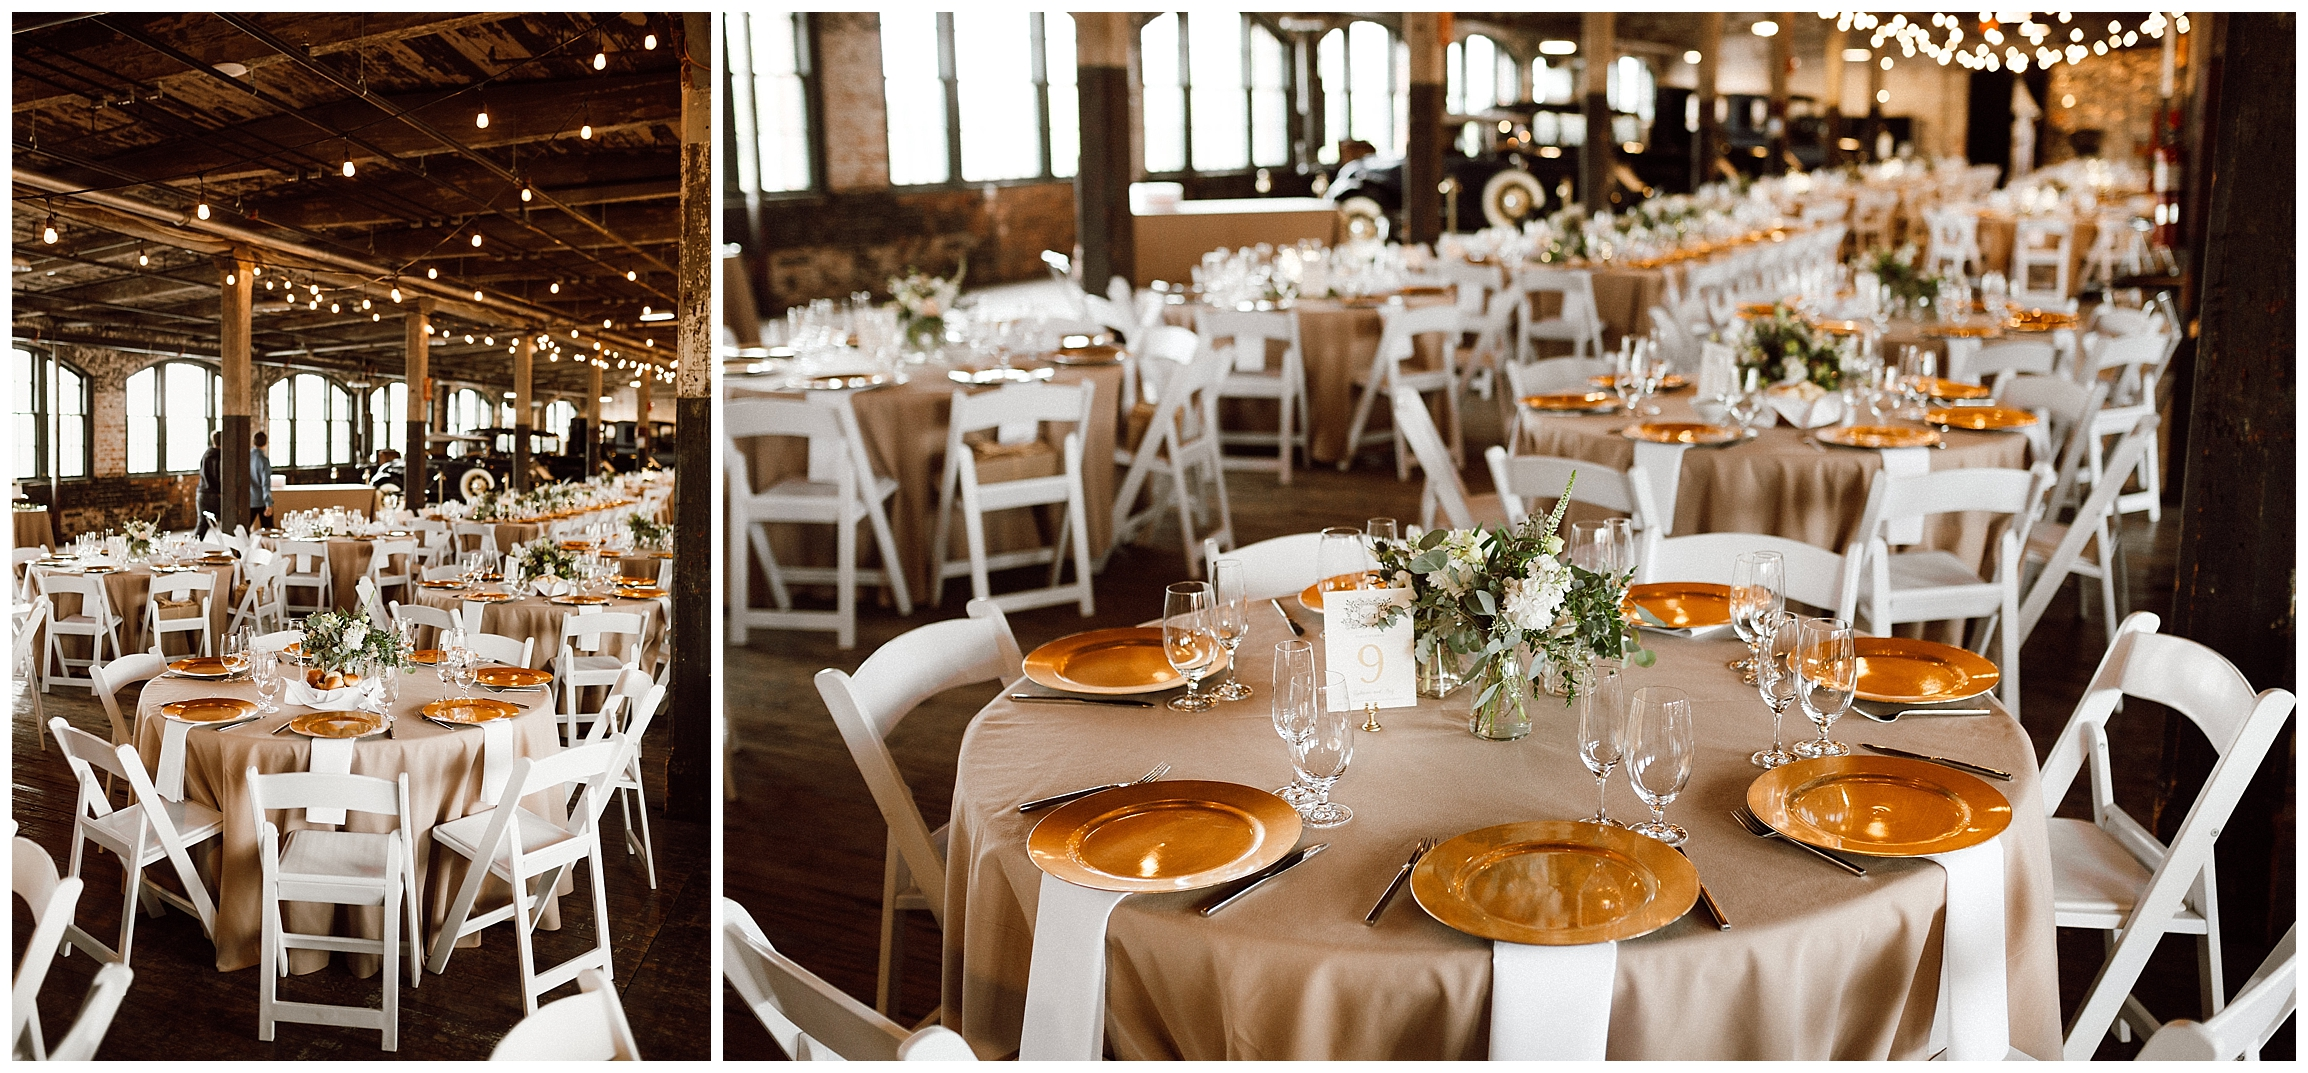 Katie_Vonasek_Photography_Ford_Piquette_Plant_Wedding_Detroit80.JPG